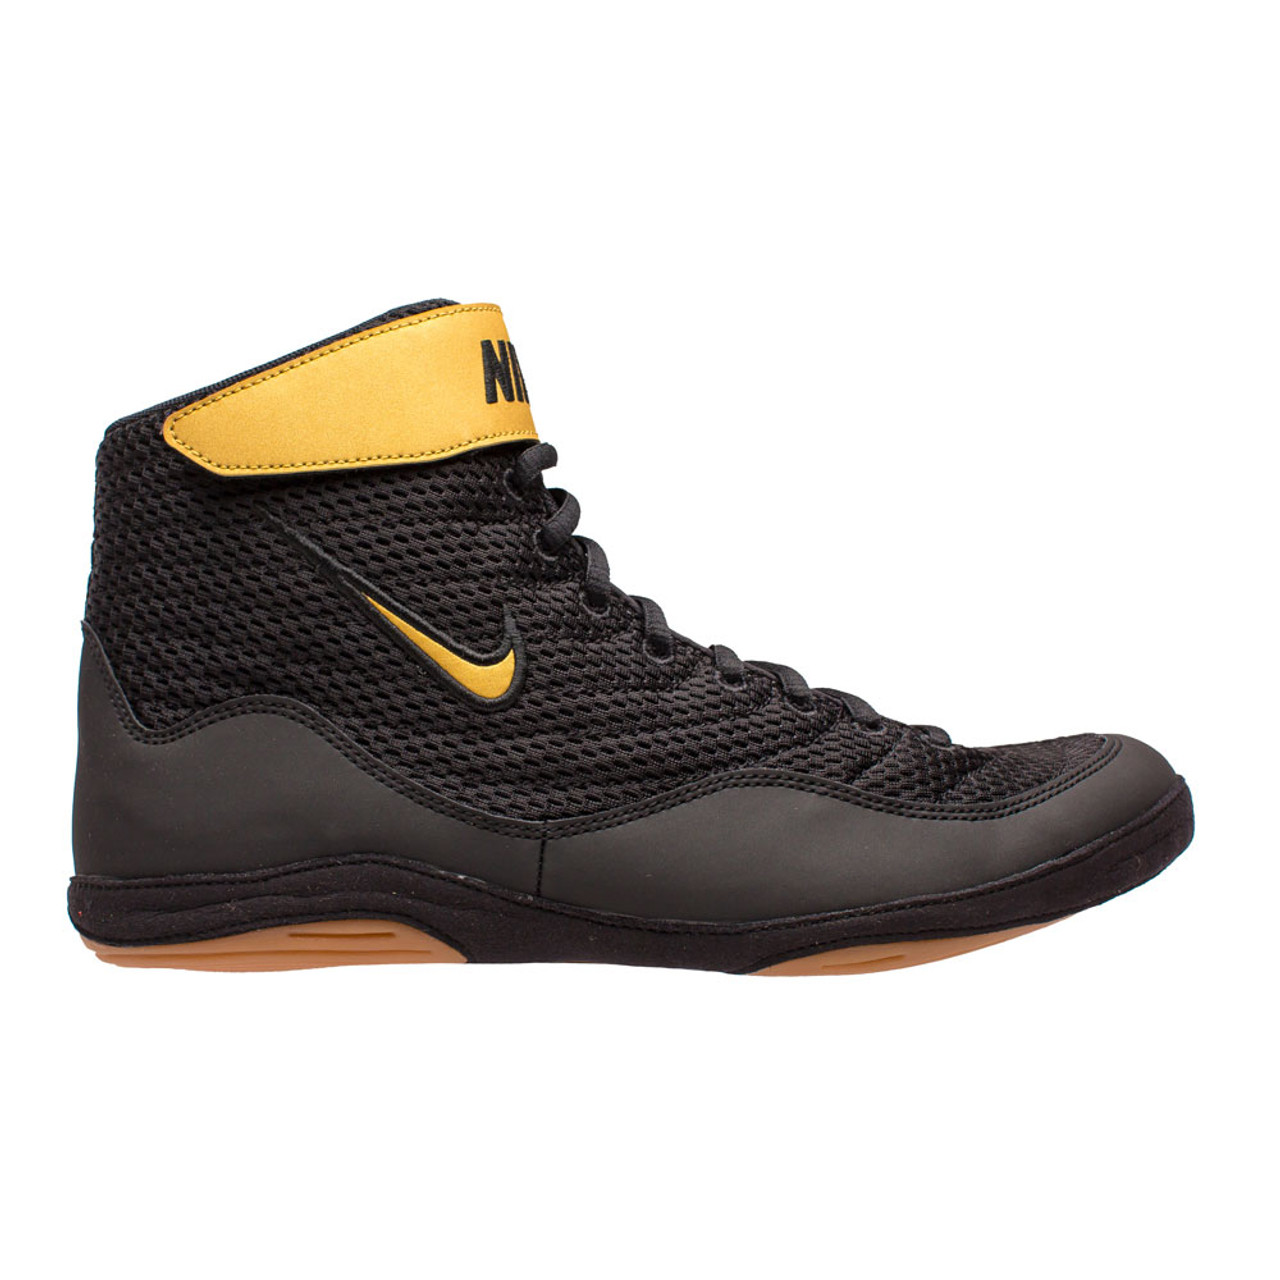 Nike Inflict 3 , Black/Metallic Gold/Black